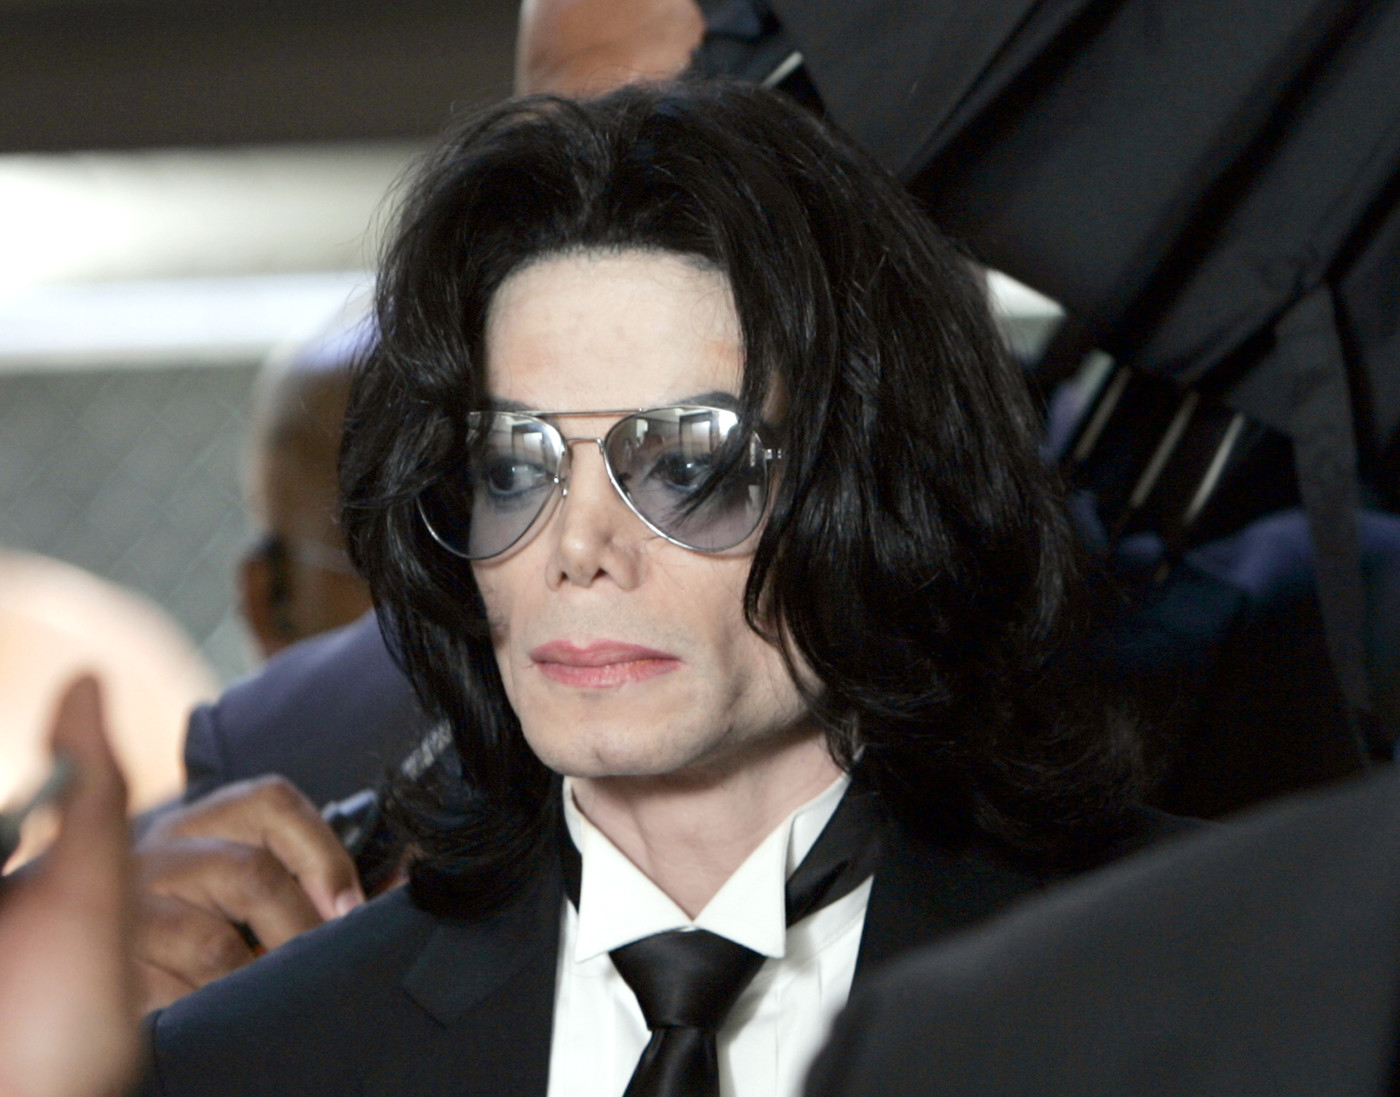 Michael Jackson prepares to enter the Santa Barbara County Superior Court